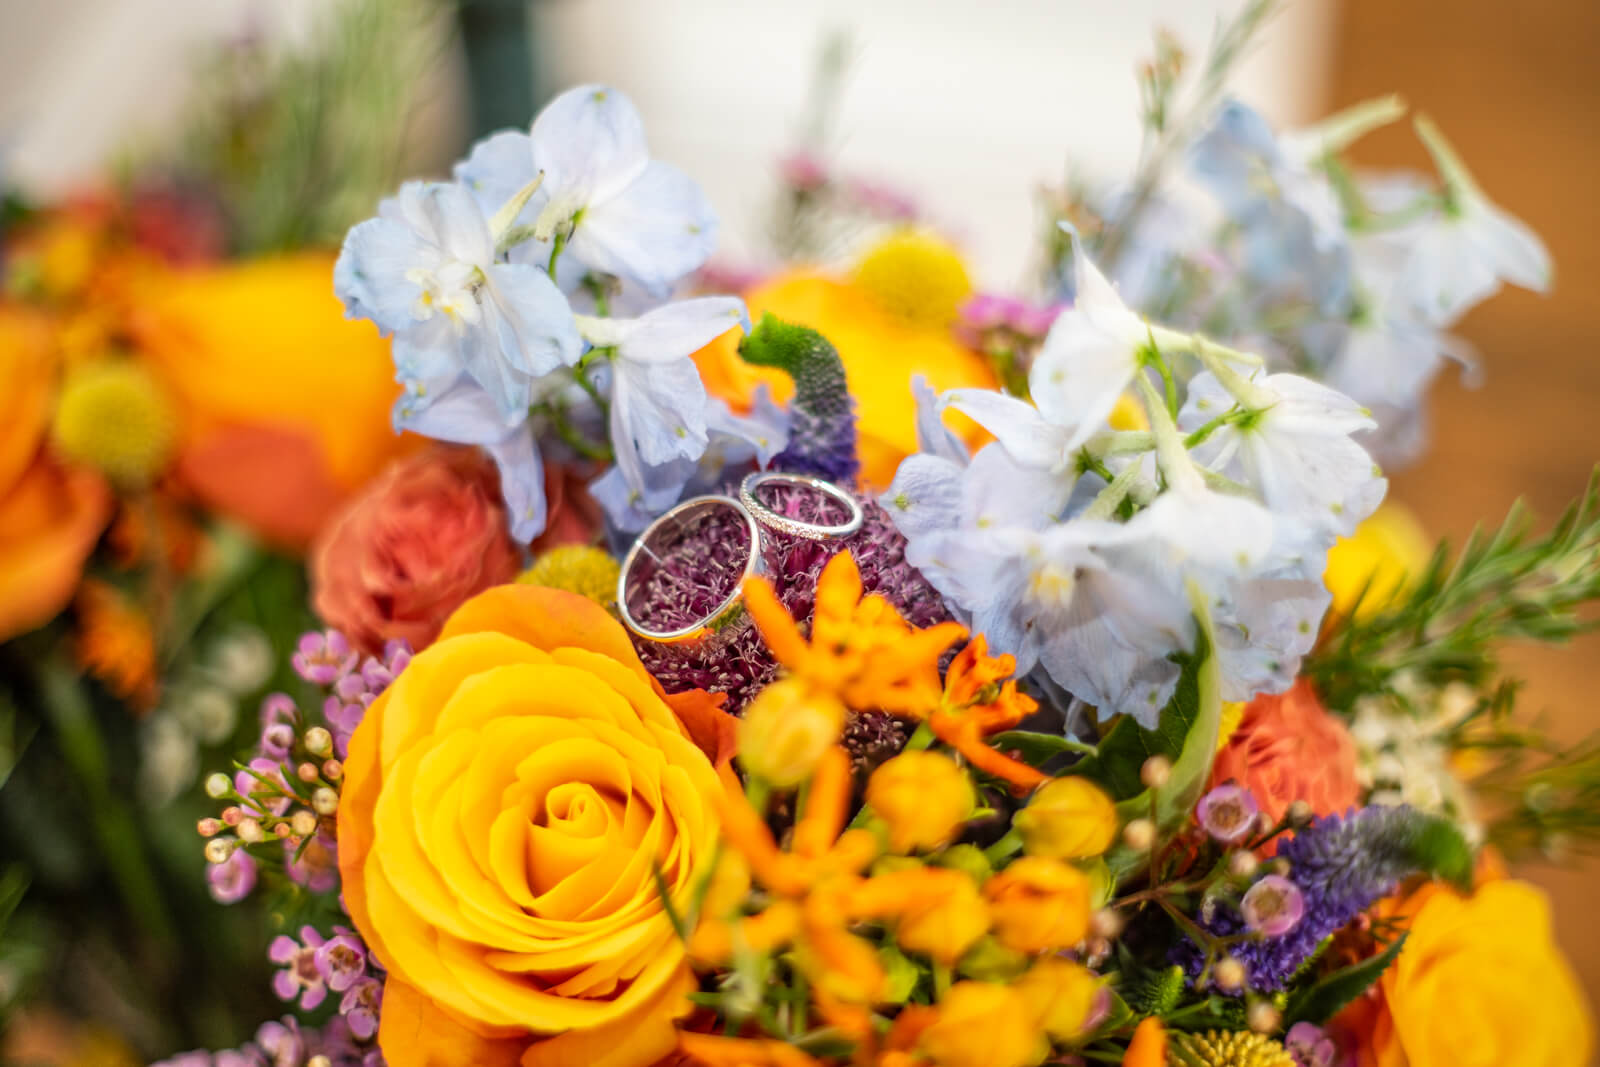 Wedding rings amongst brightly coloured summer flowers